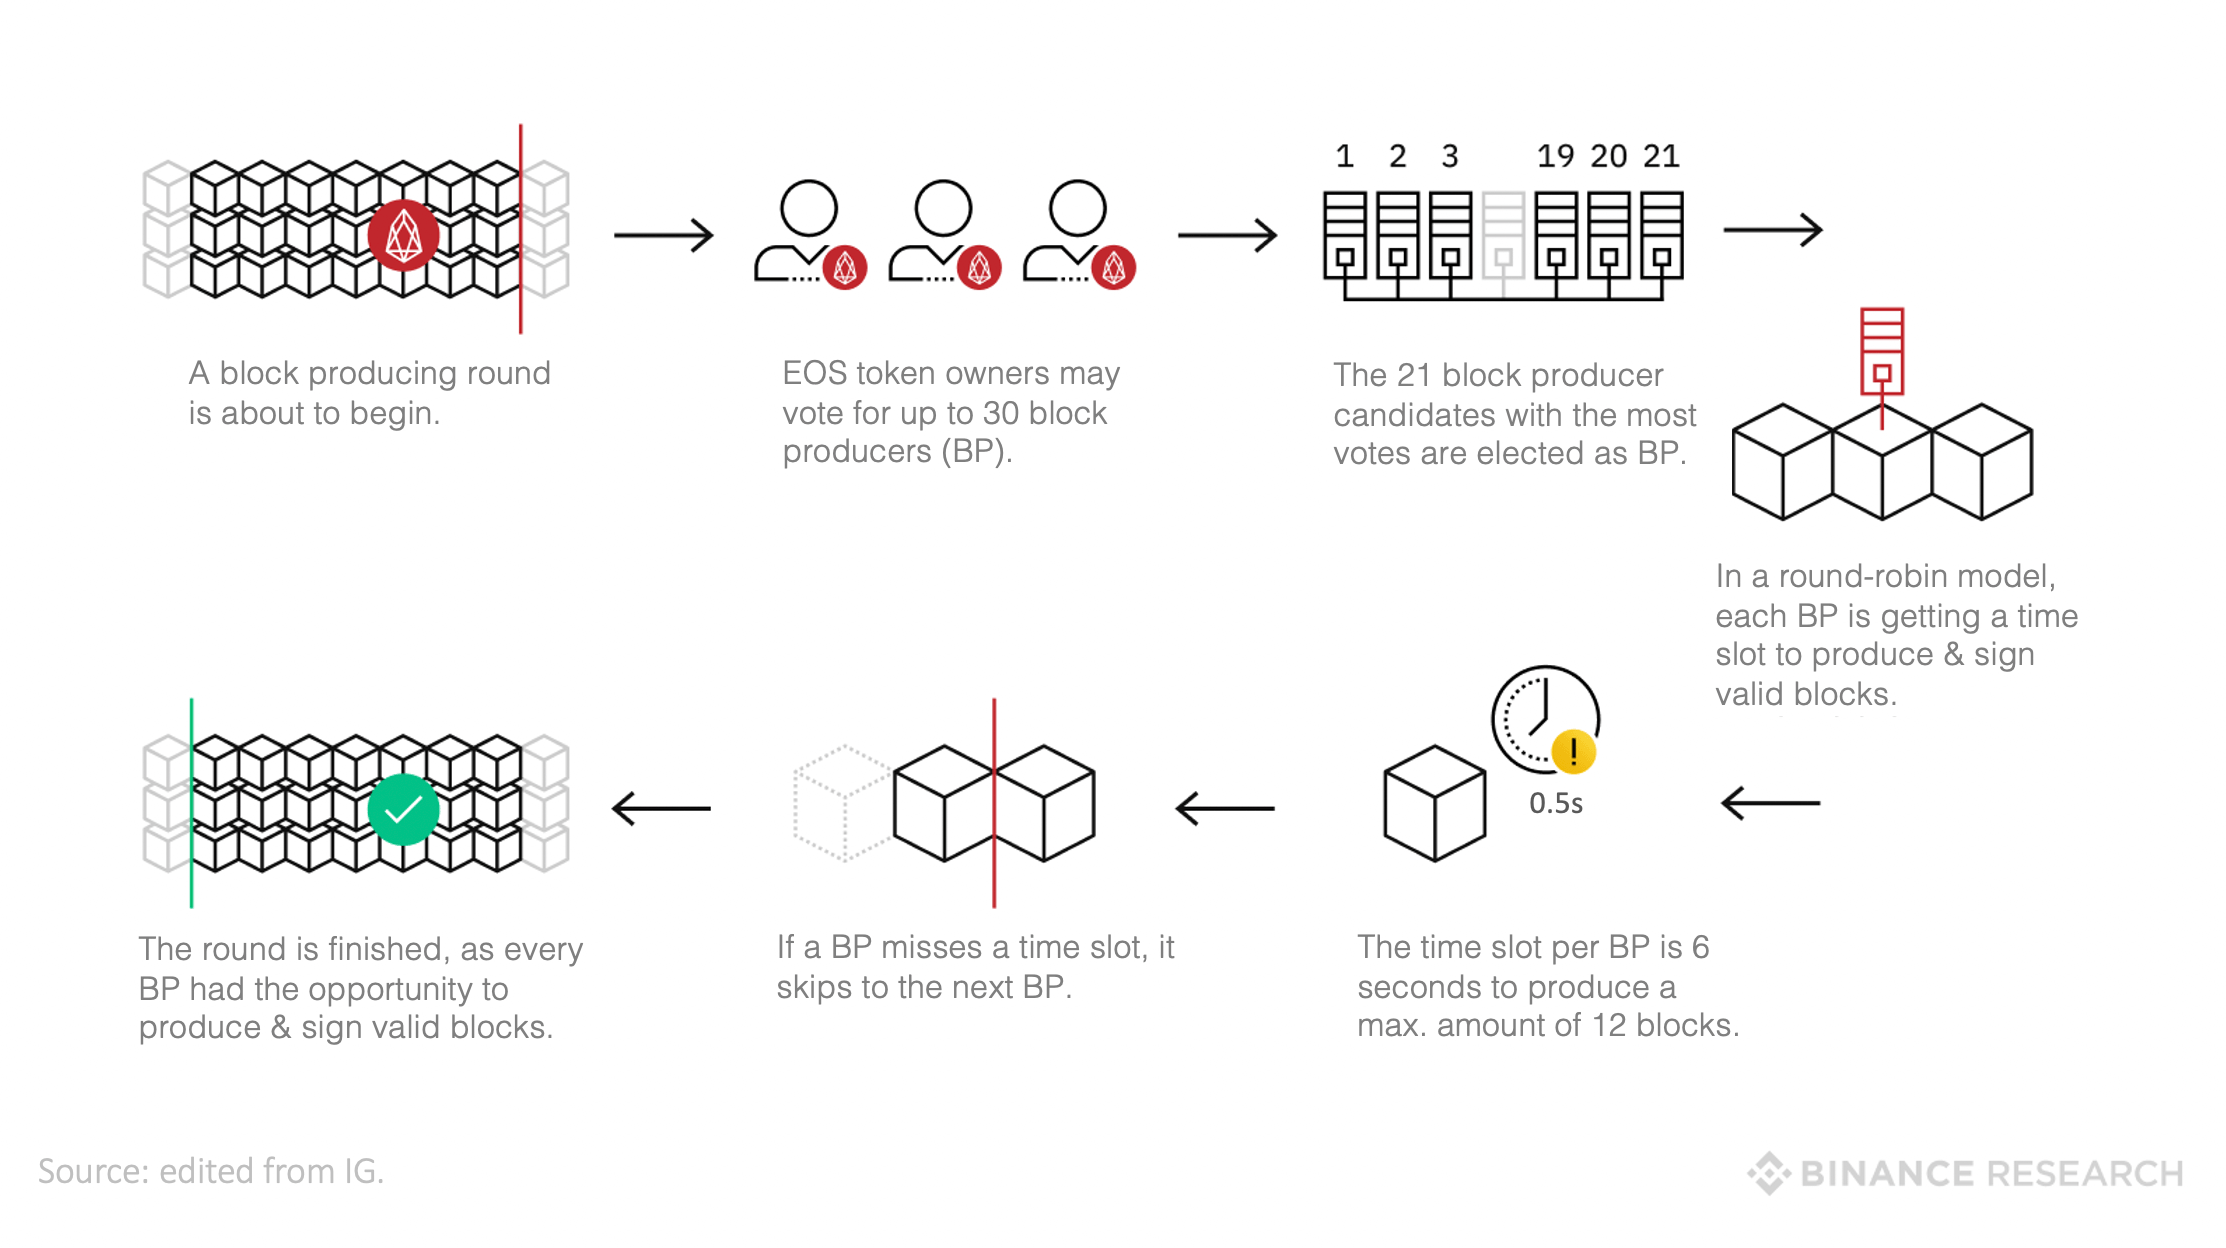 how does EOS work?